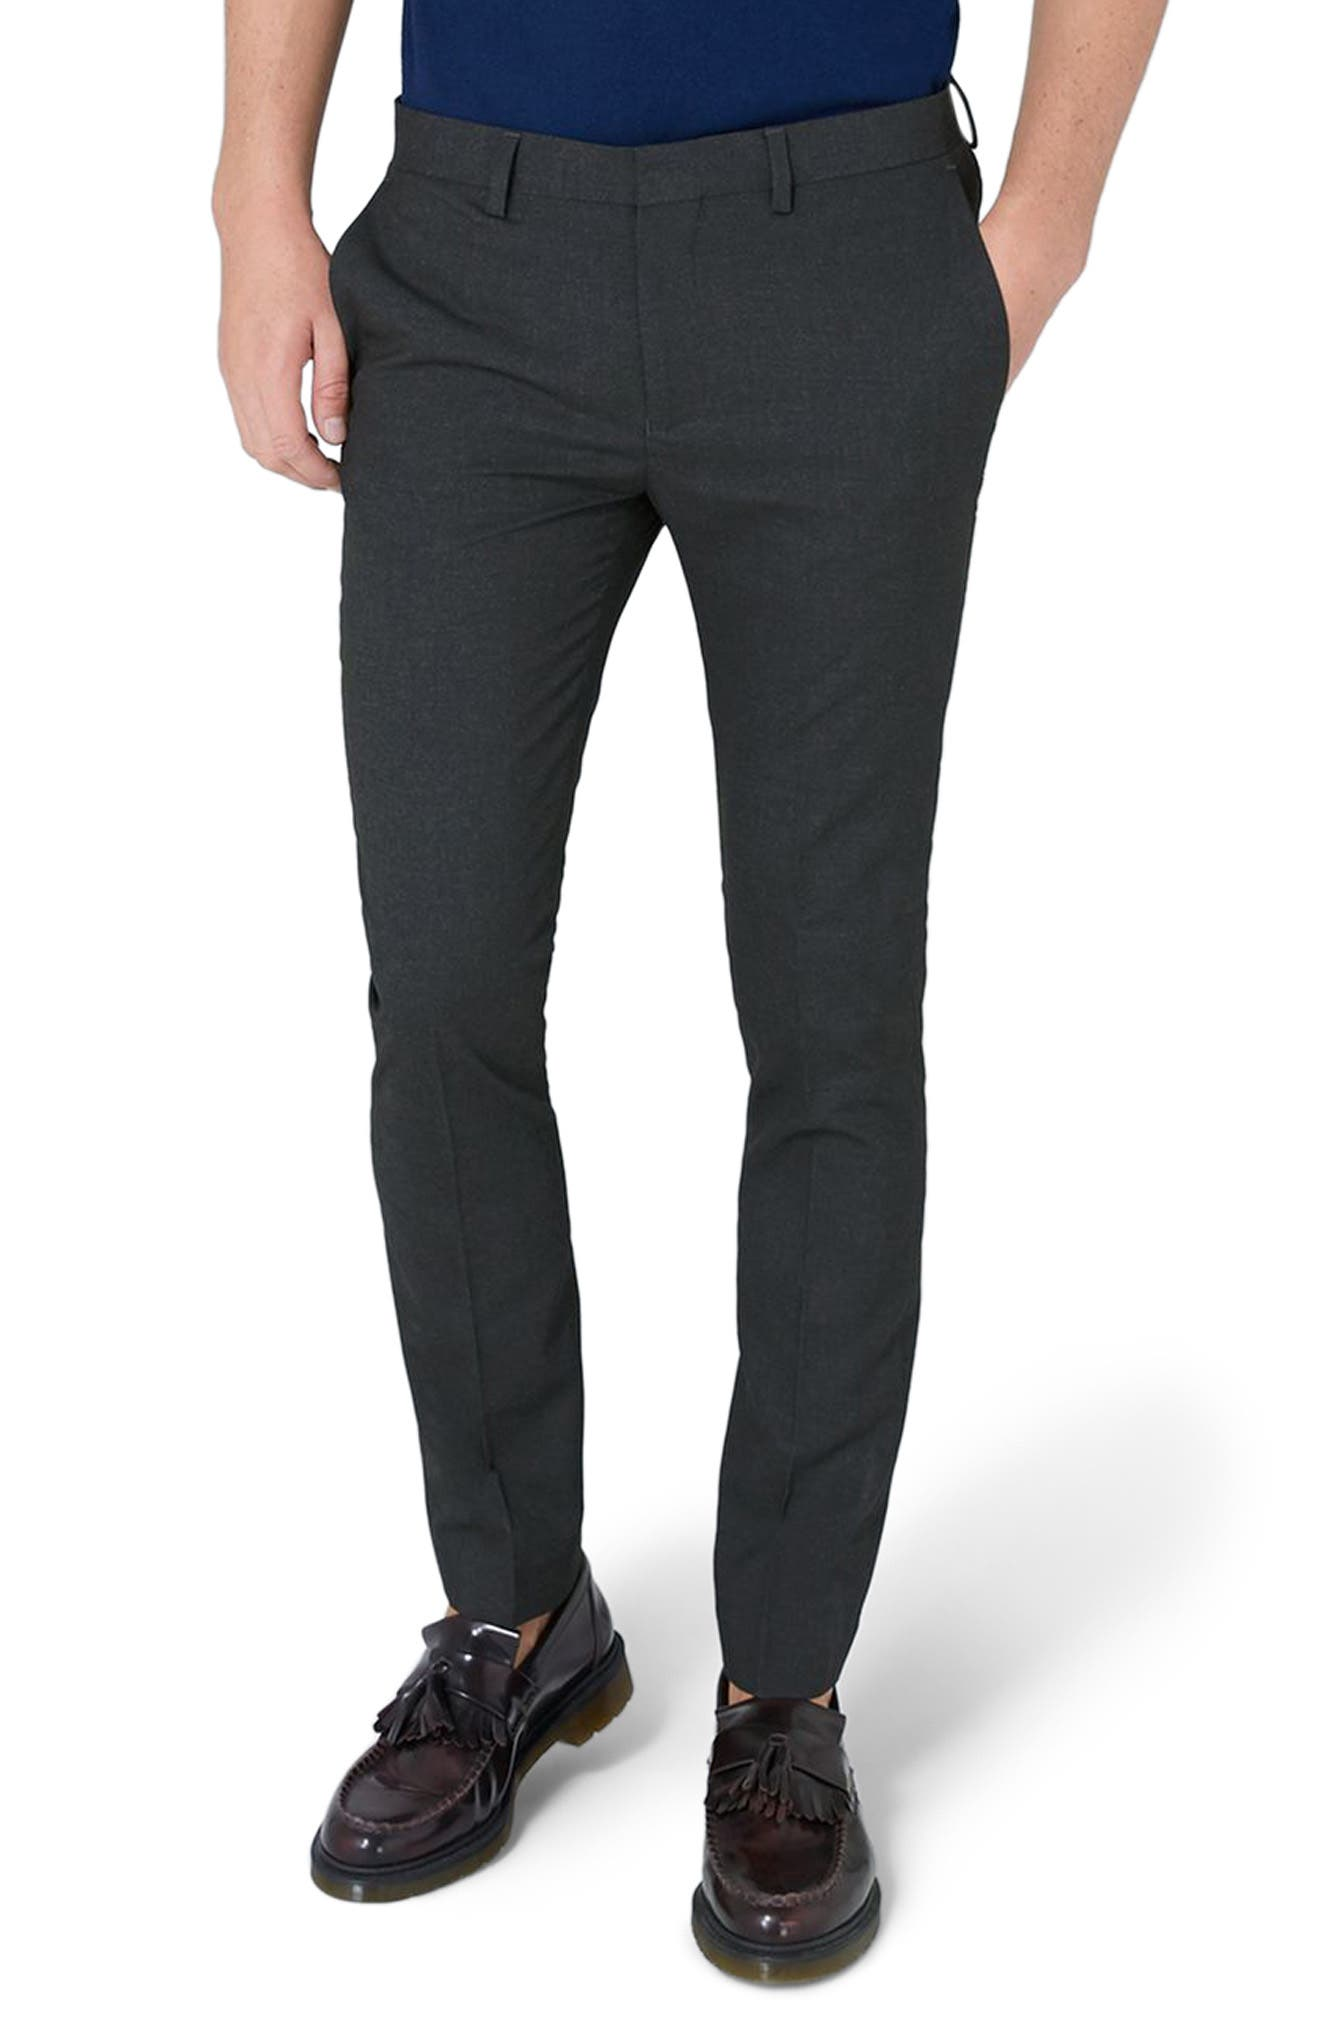 Ultra Skinny Fit Trousers,                             Main thumbnail 1, color,                             021